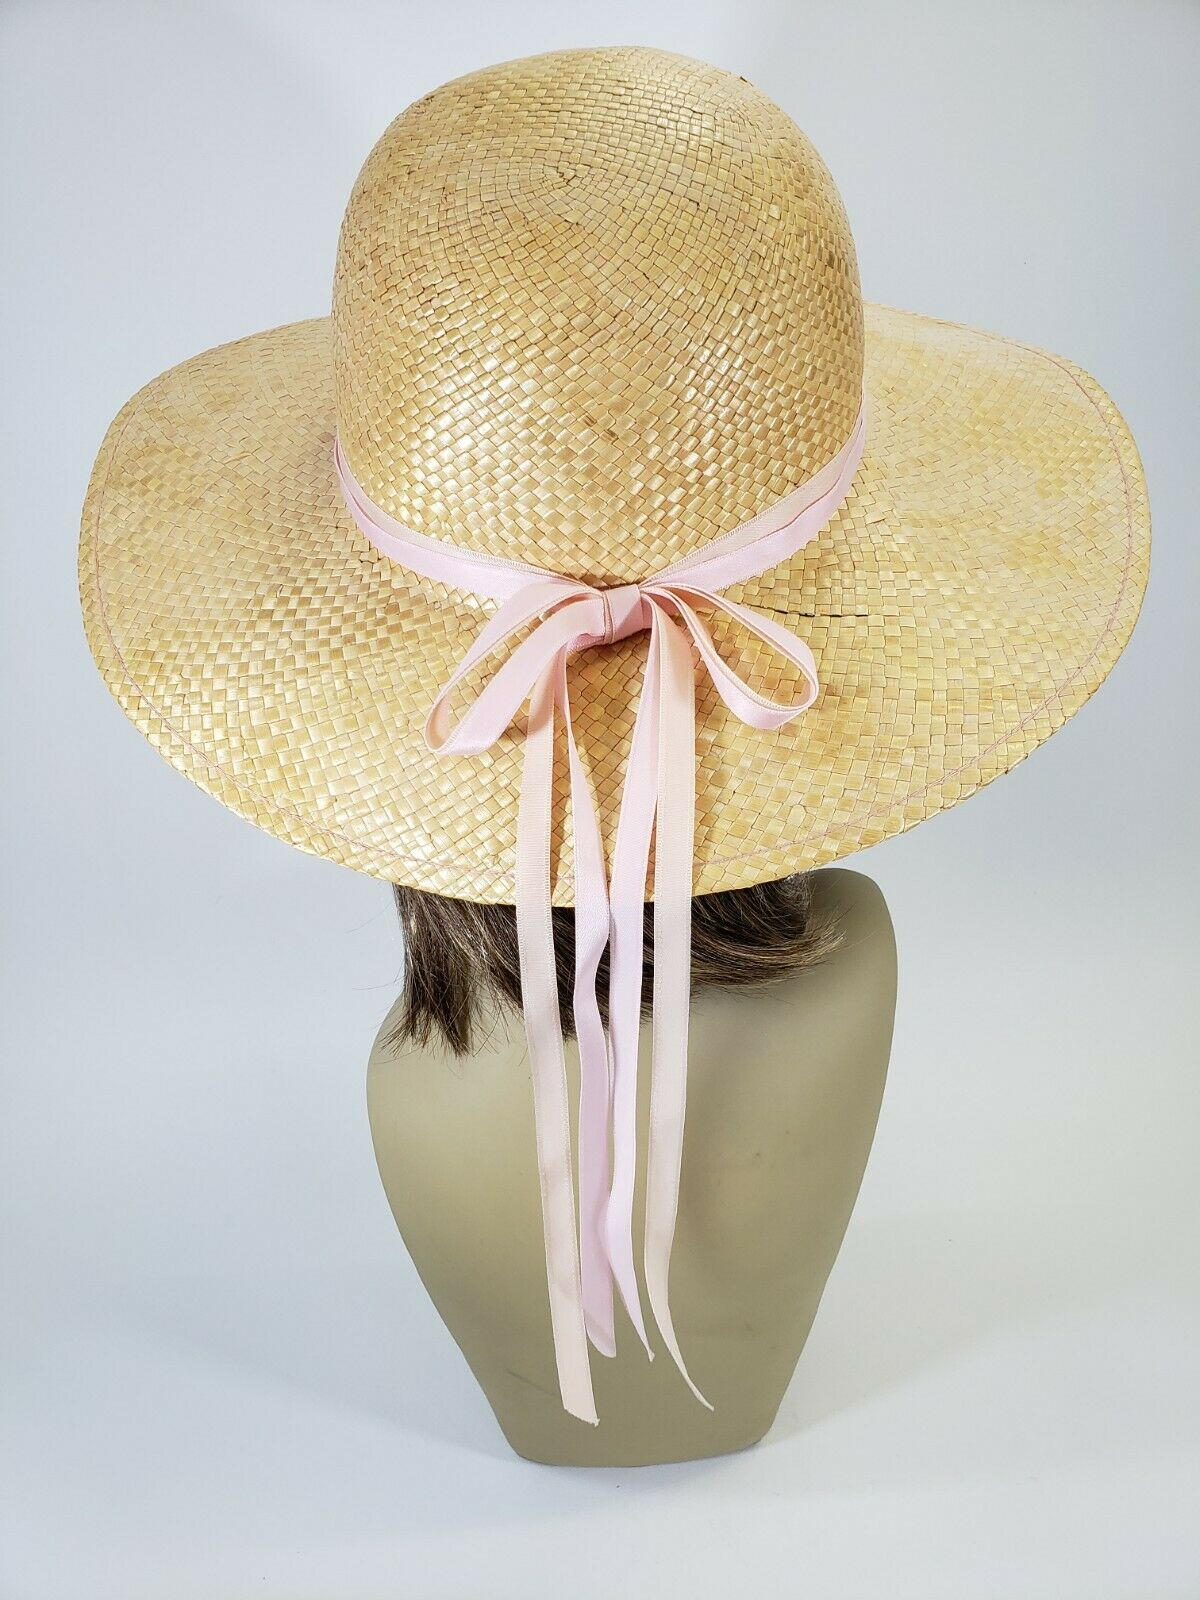 Vintage Woven Straw Sunhat with Pink Ribbon Bow on Back 1970s